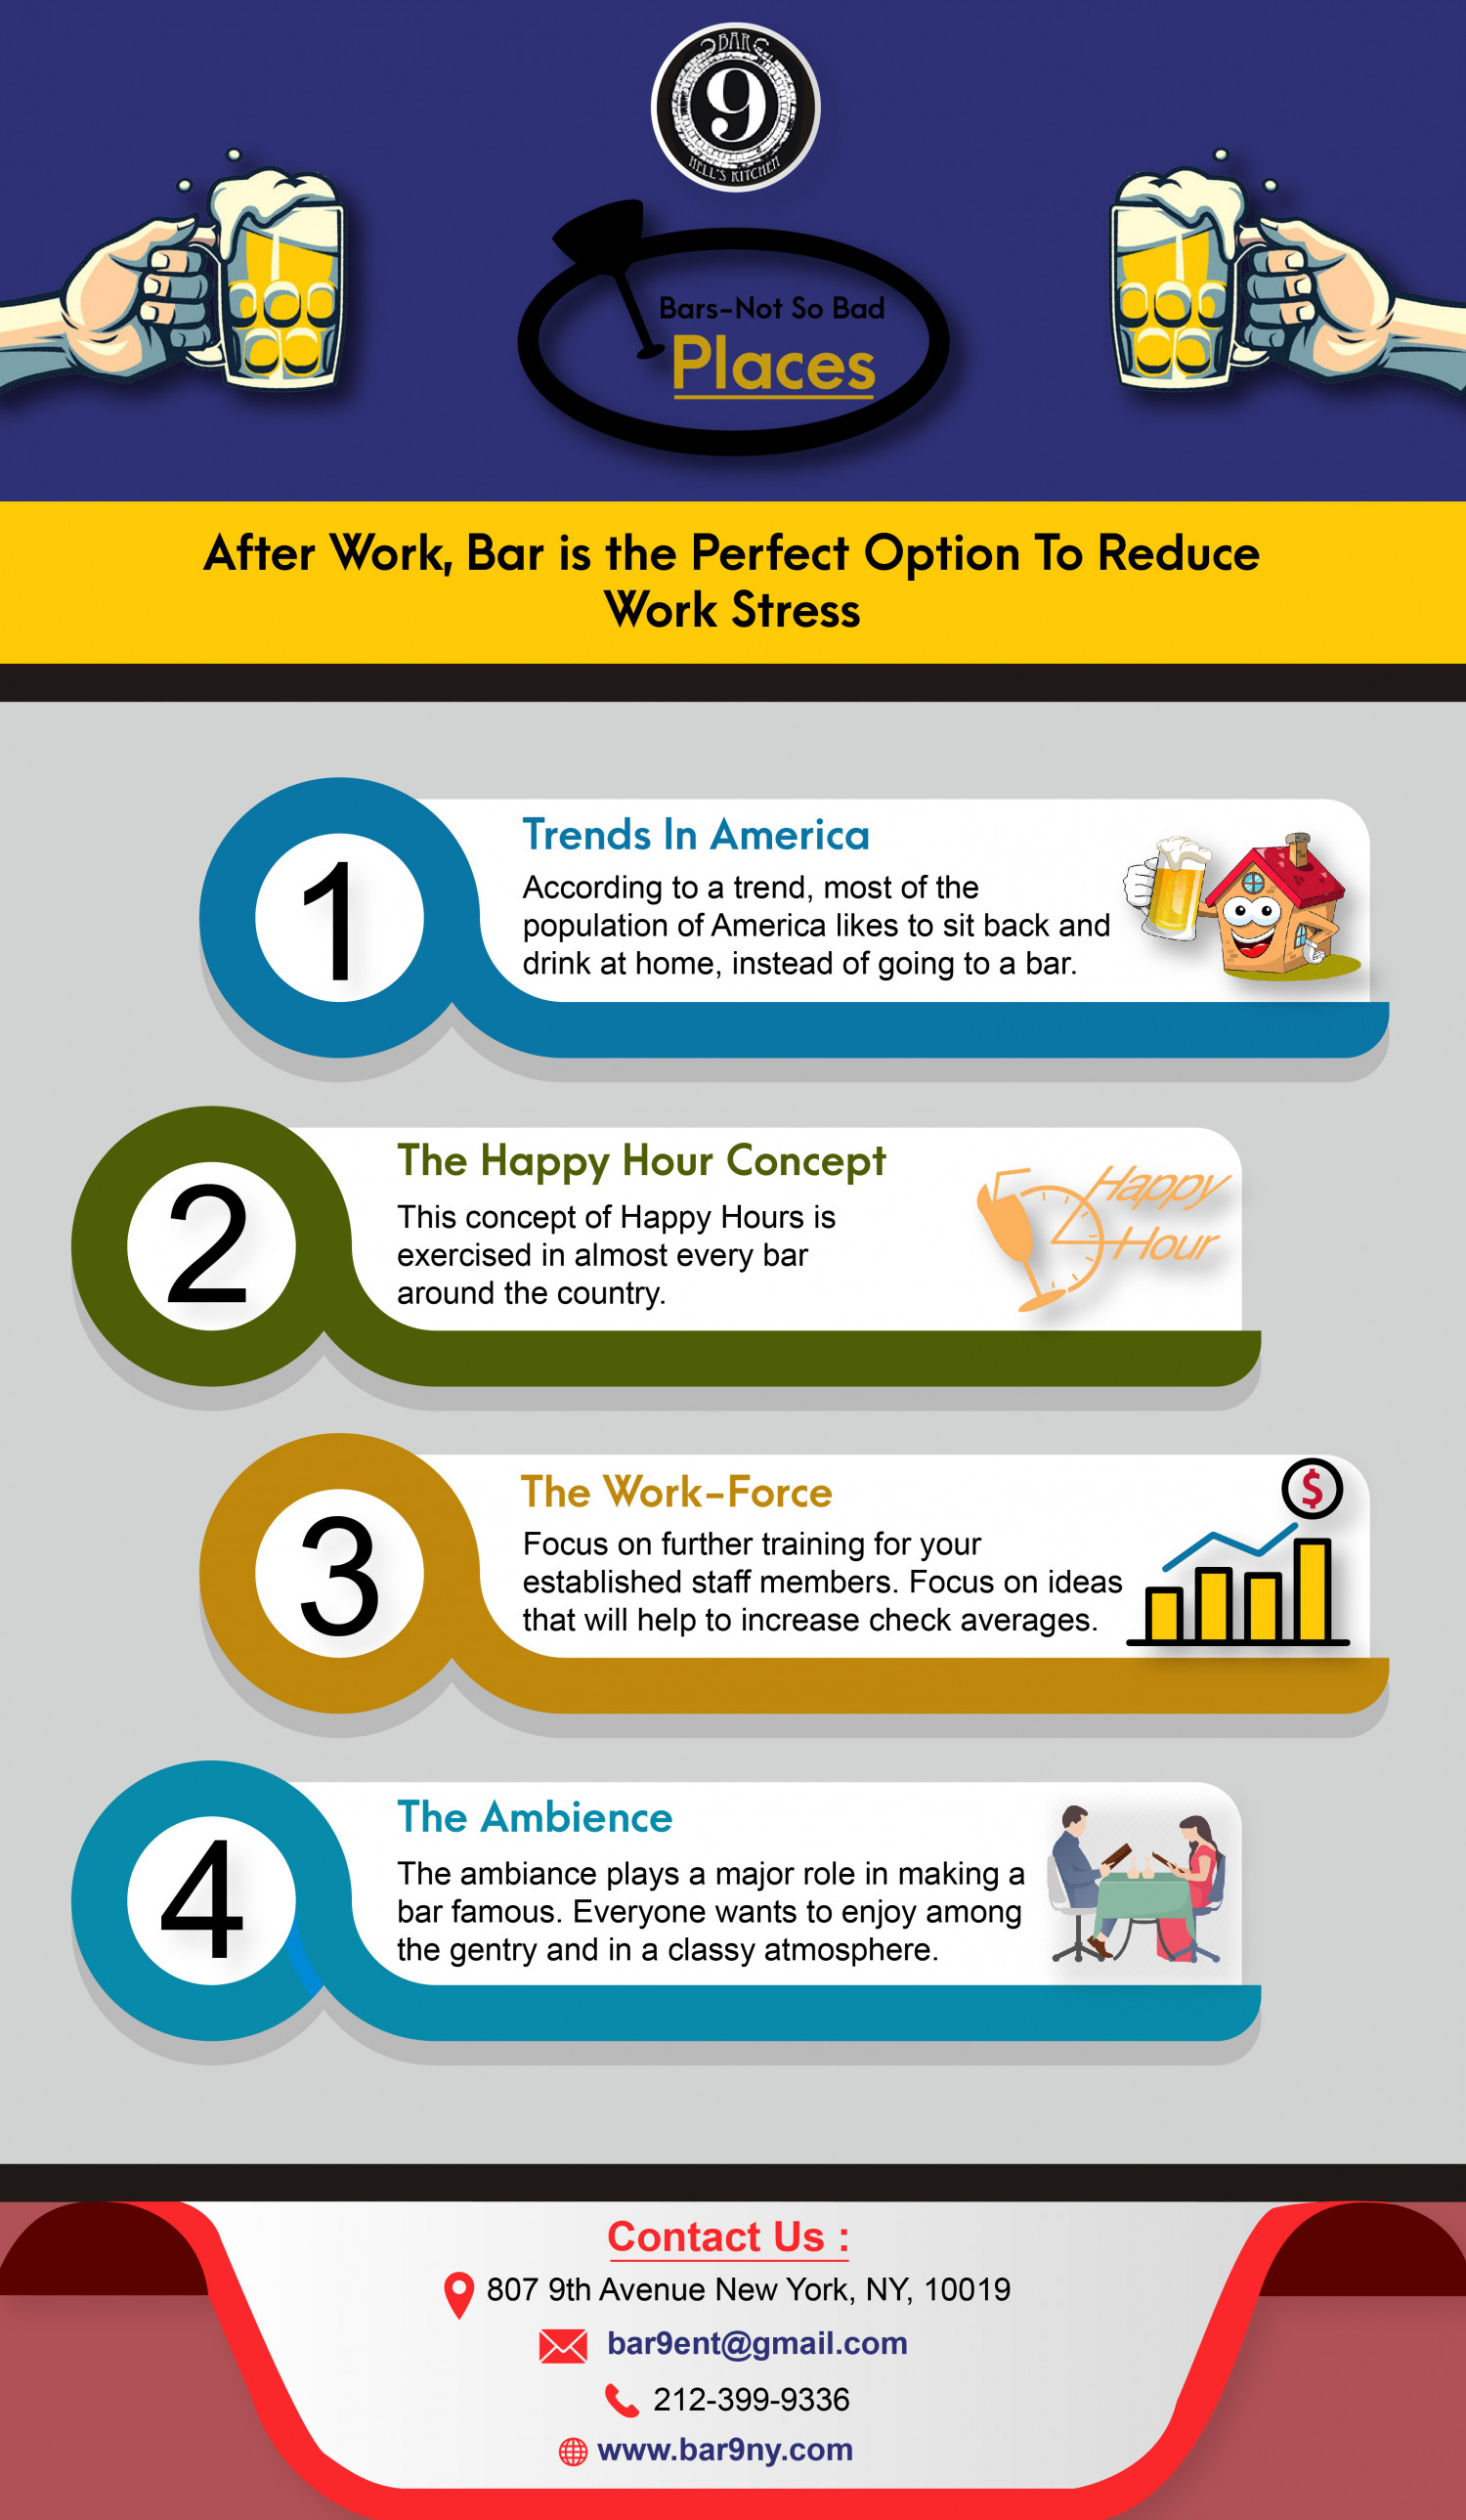 Bars-Not So Bad Places Infographic